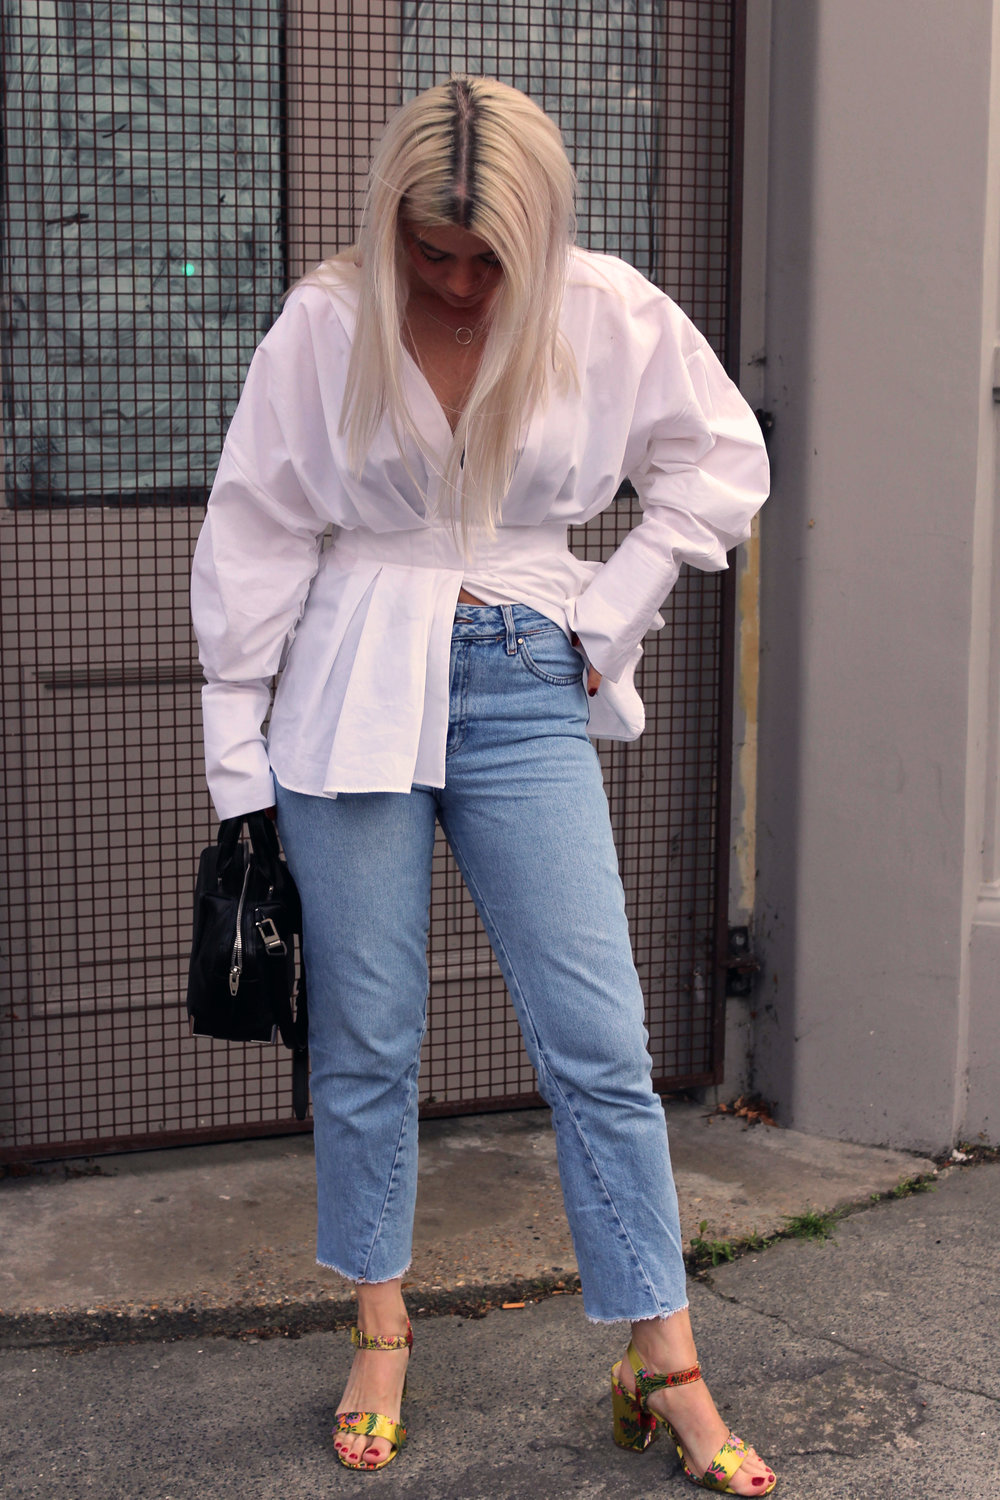 white shirt, topshop jeans, oriental sandals, white blonde hair, northern magpie, joey taylor 6